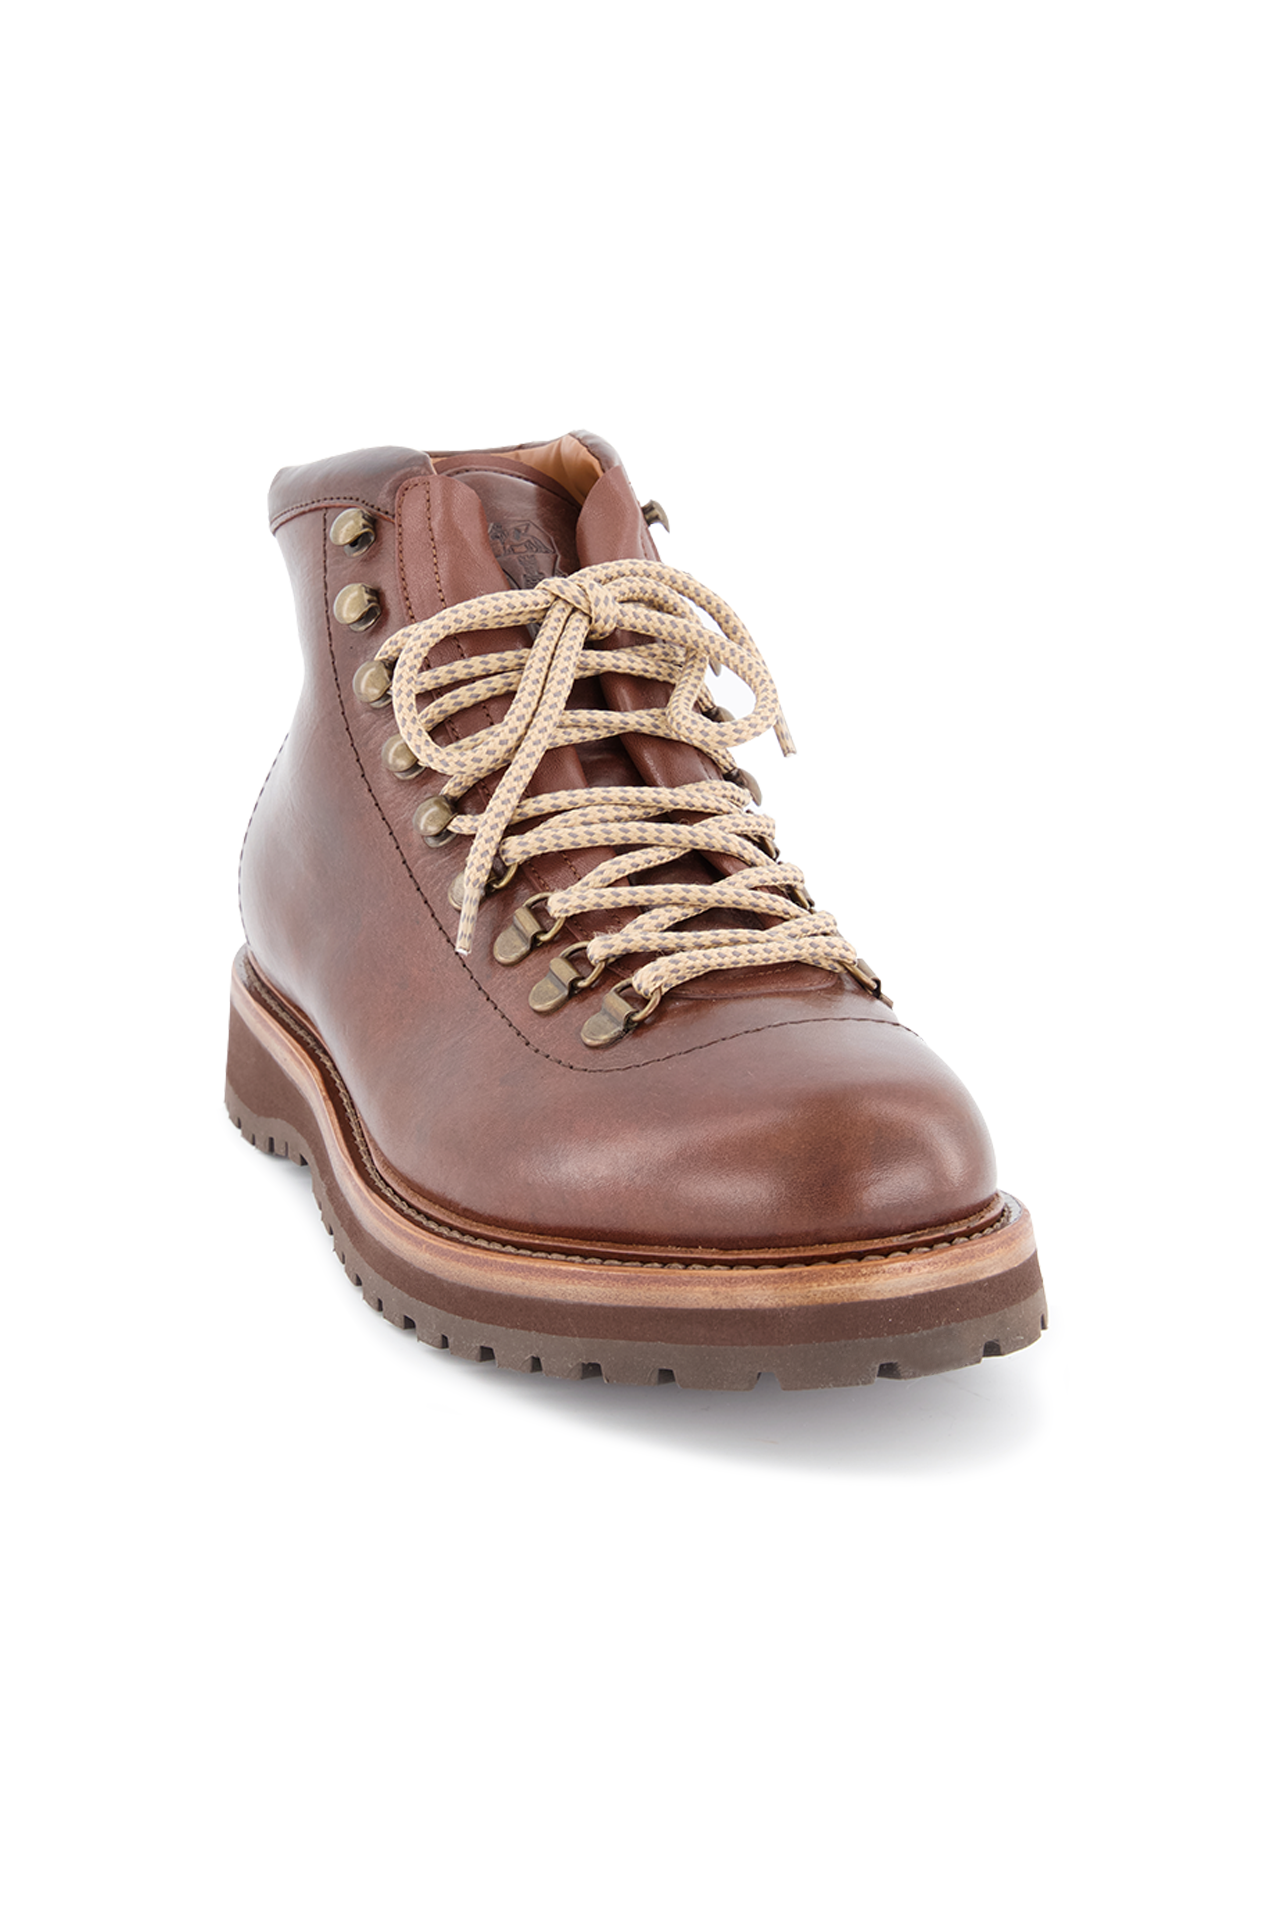 Front angled view image of Brunello Cucinelli Men's Tobacco Boots